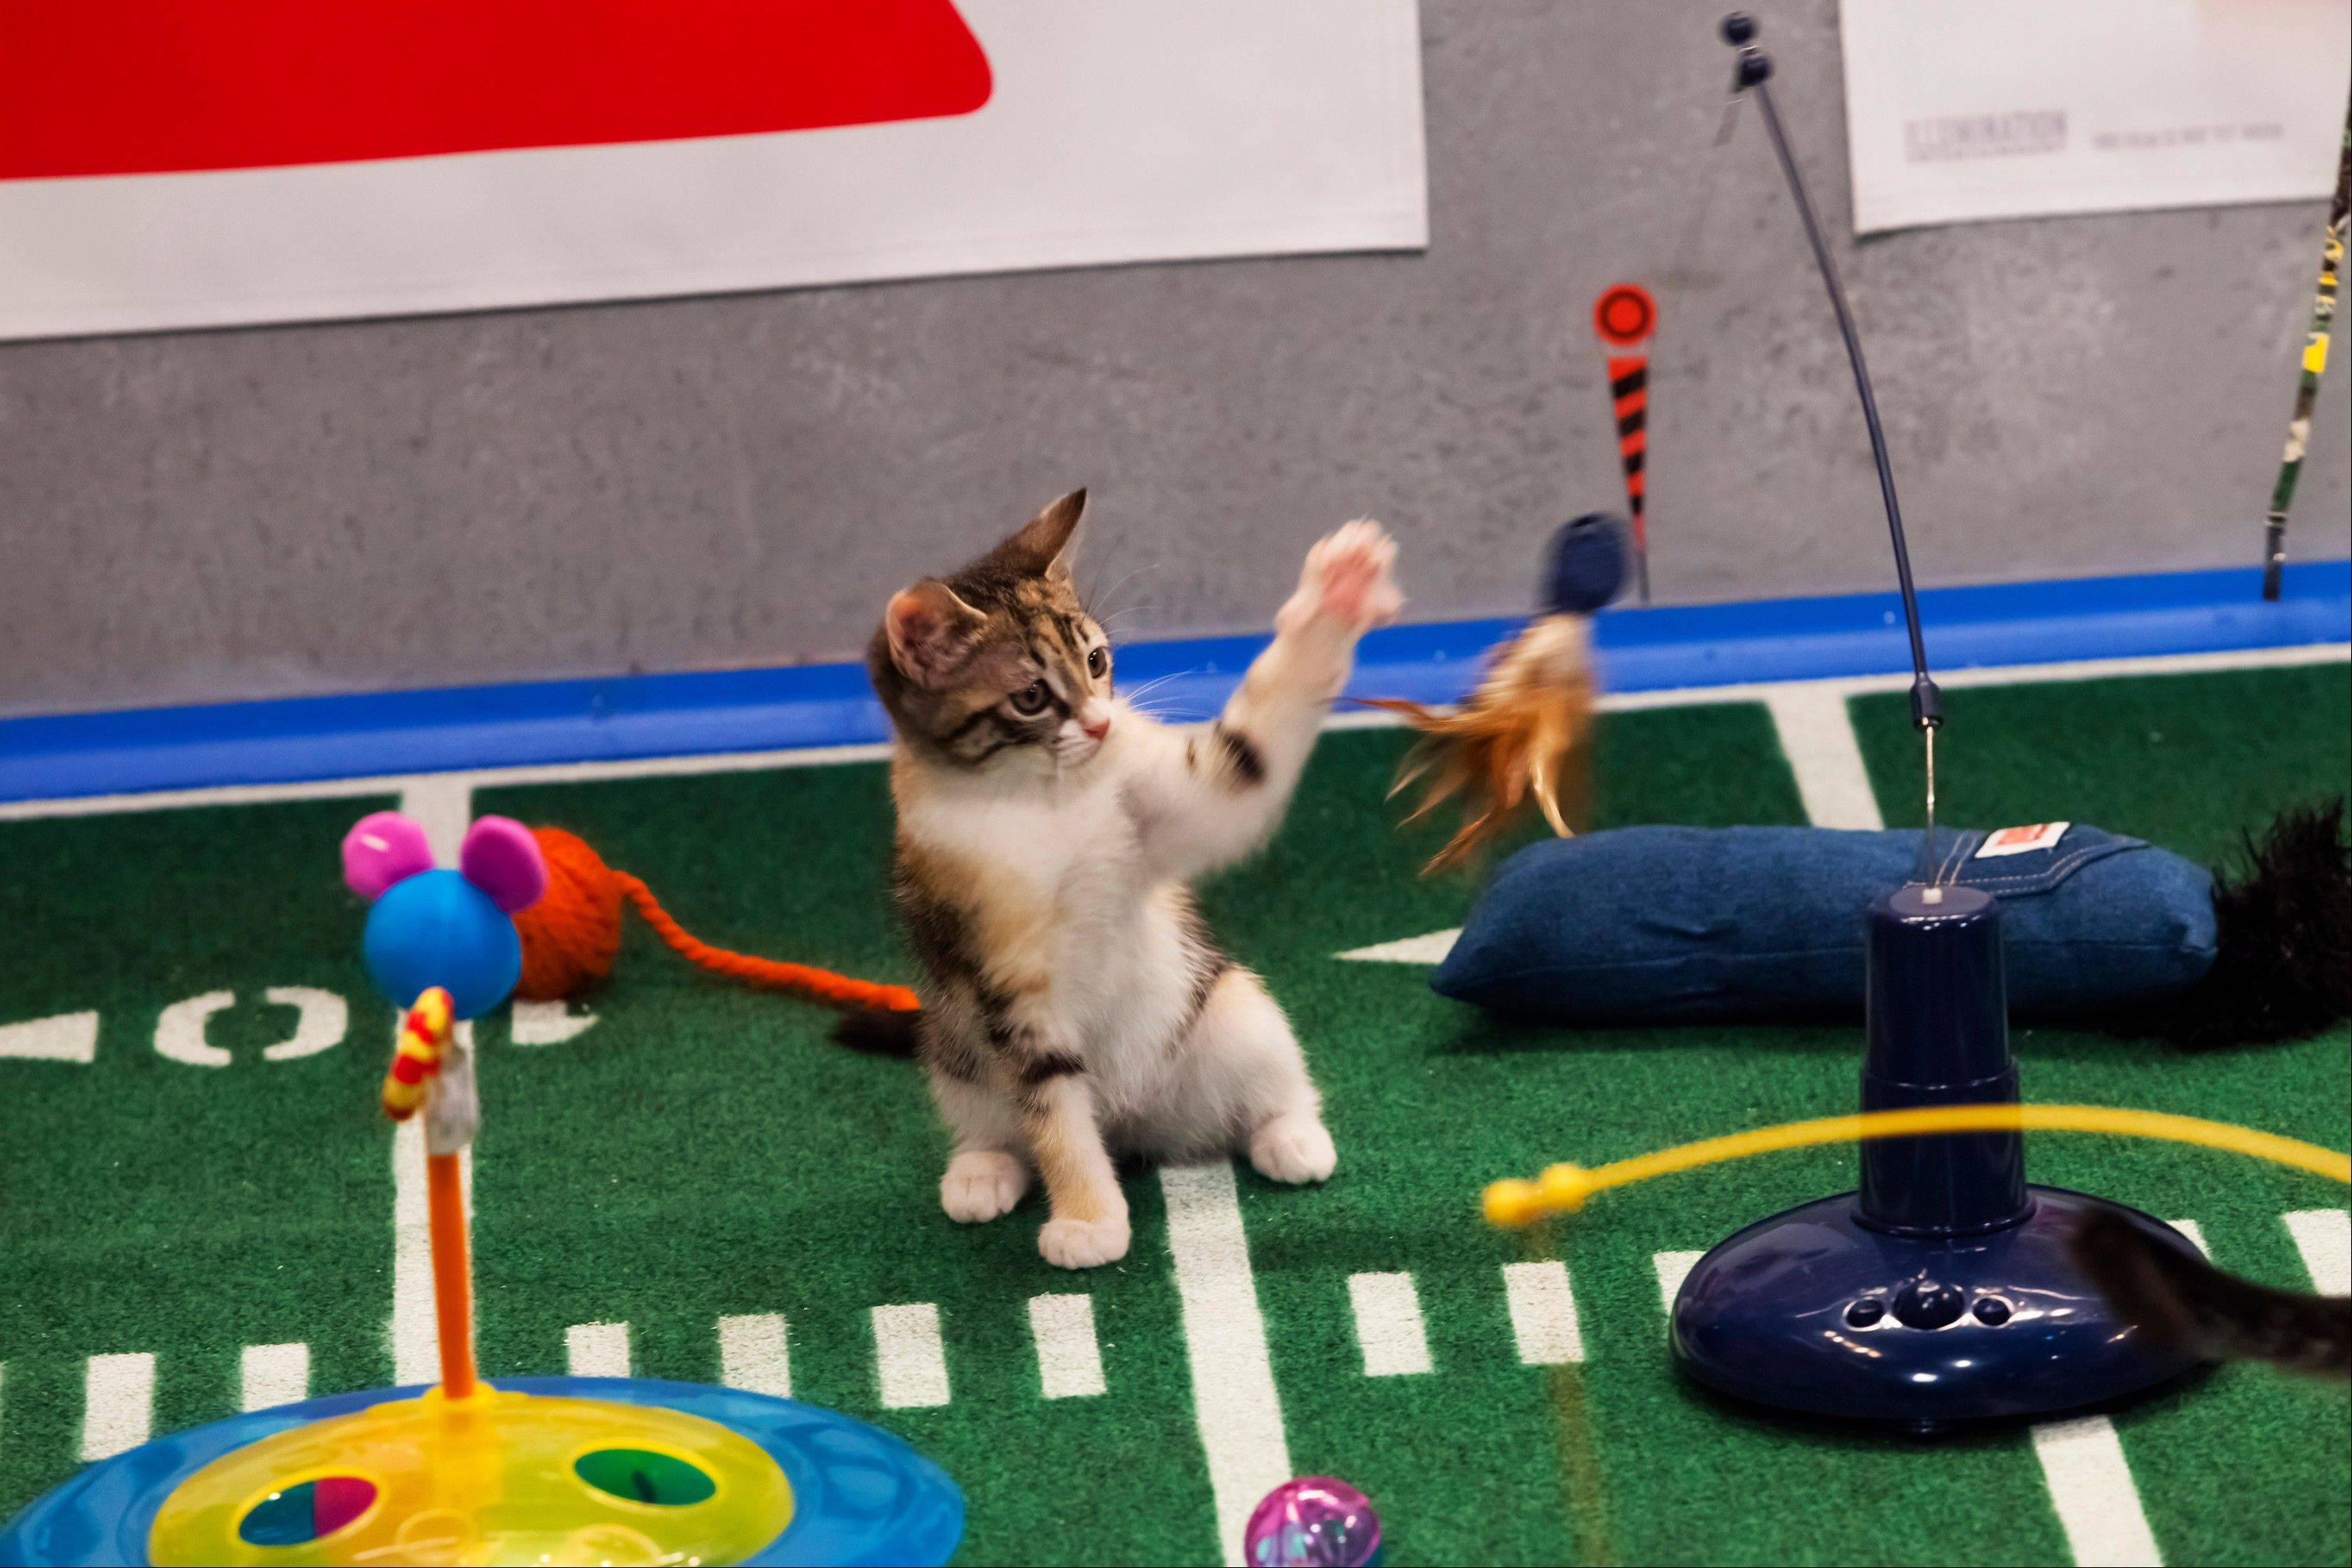 The inaugural Kitten Bowl will be shown on the Hallmark Channel. The show is part of Hallmark�s Pet Project Initiative and will be done with partner American Humane Association.